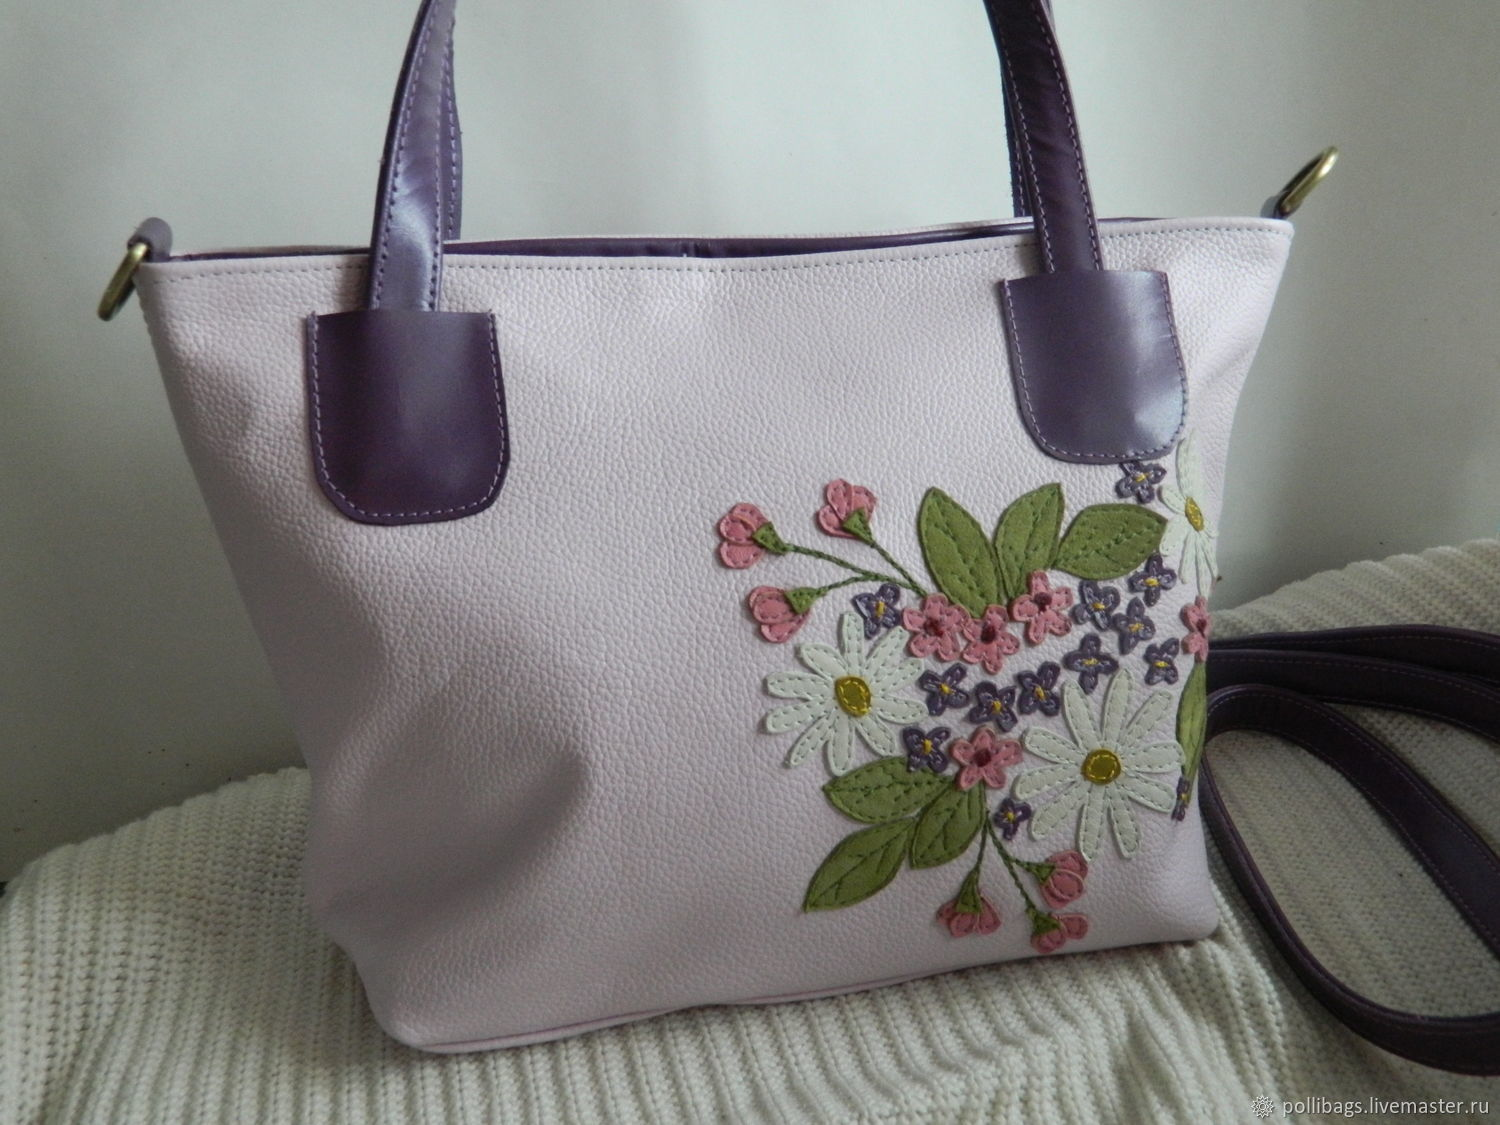 Leather bag bag with applique spring garden purple u shop online